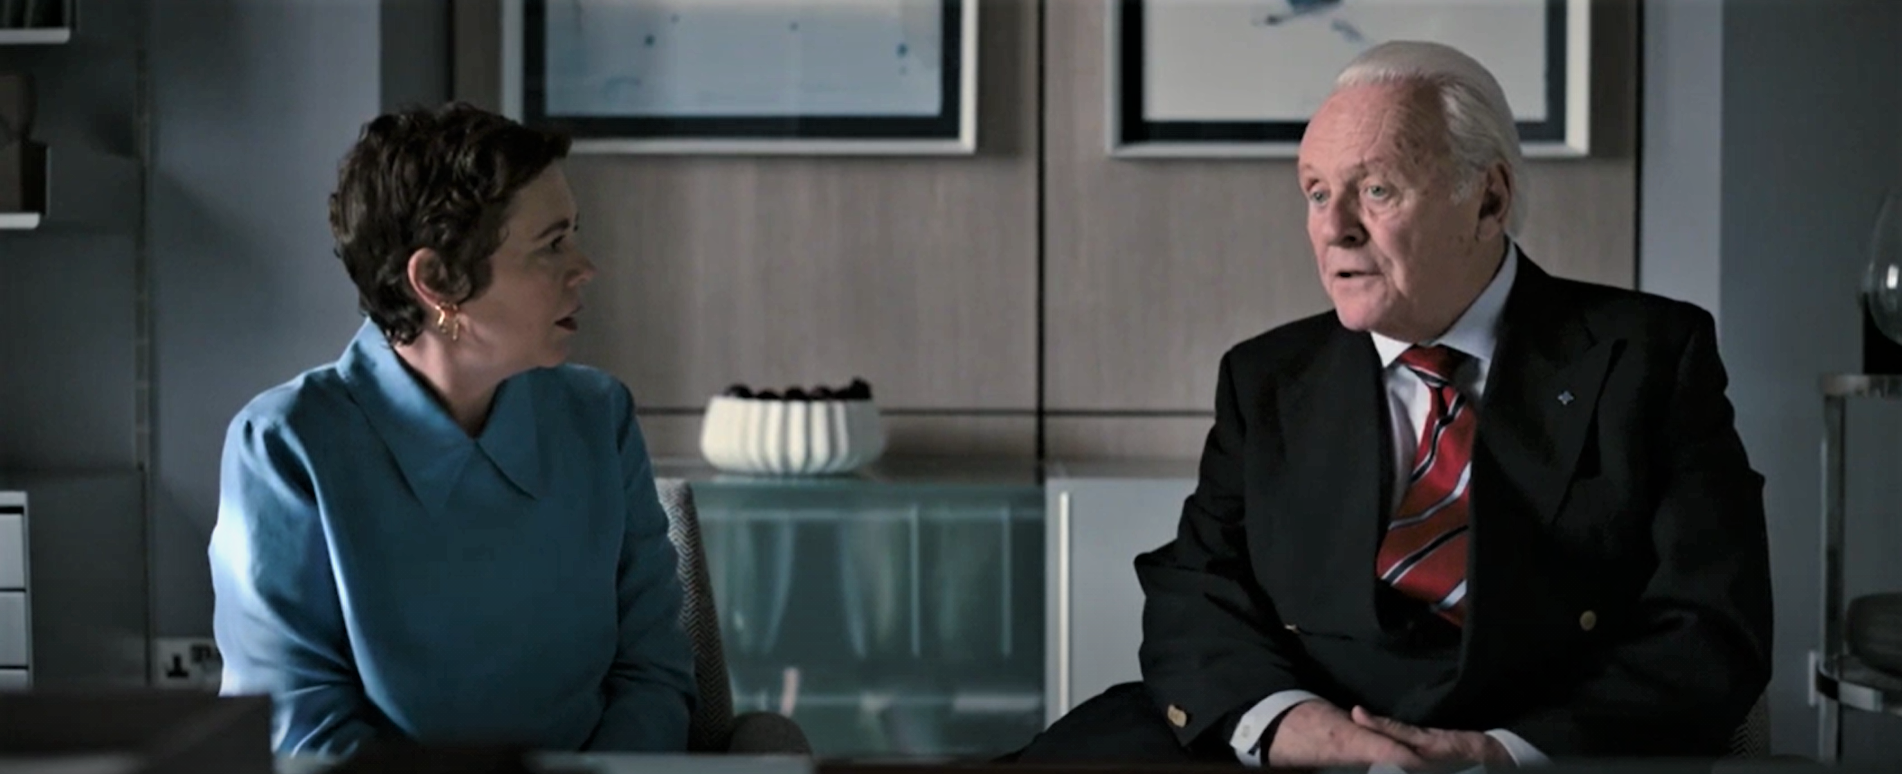 Anthony (Anthony Hopkins) has a moment of confusion during a doctor's appointment.